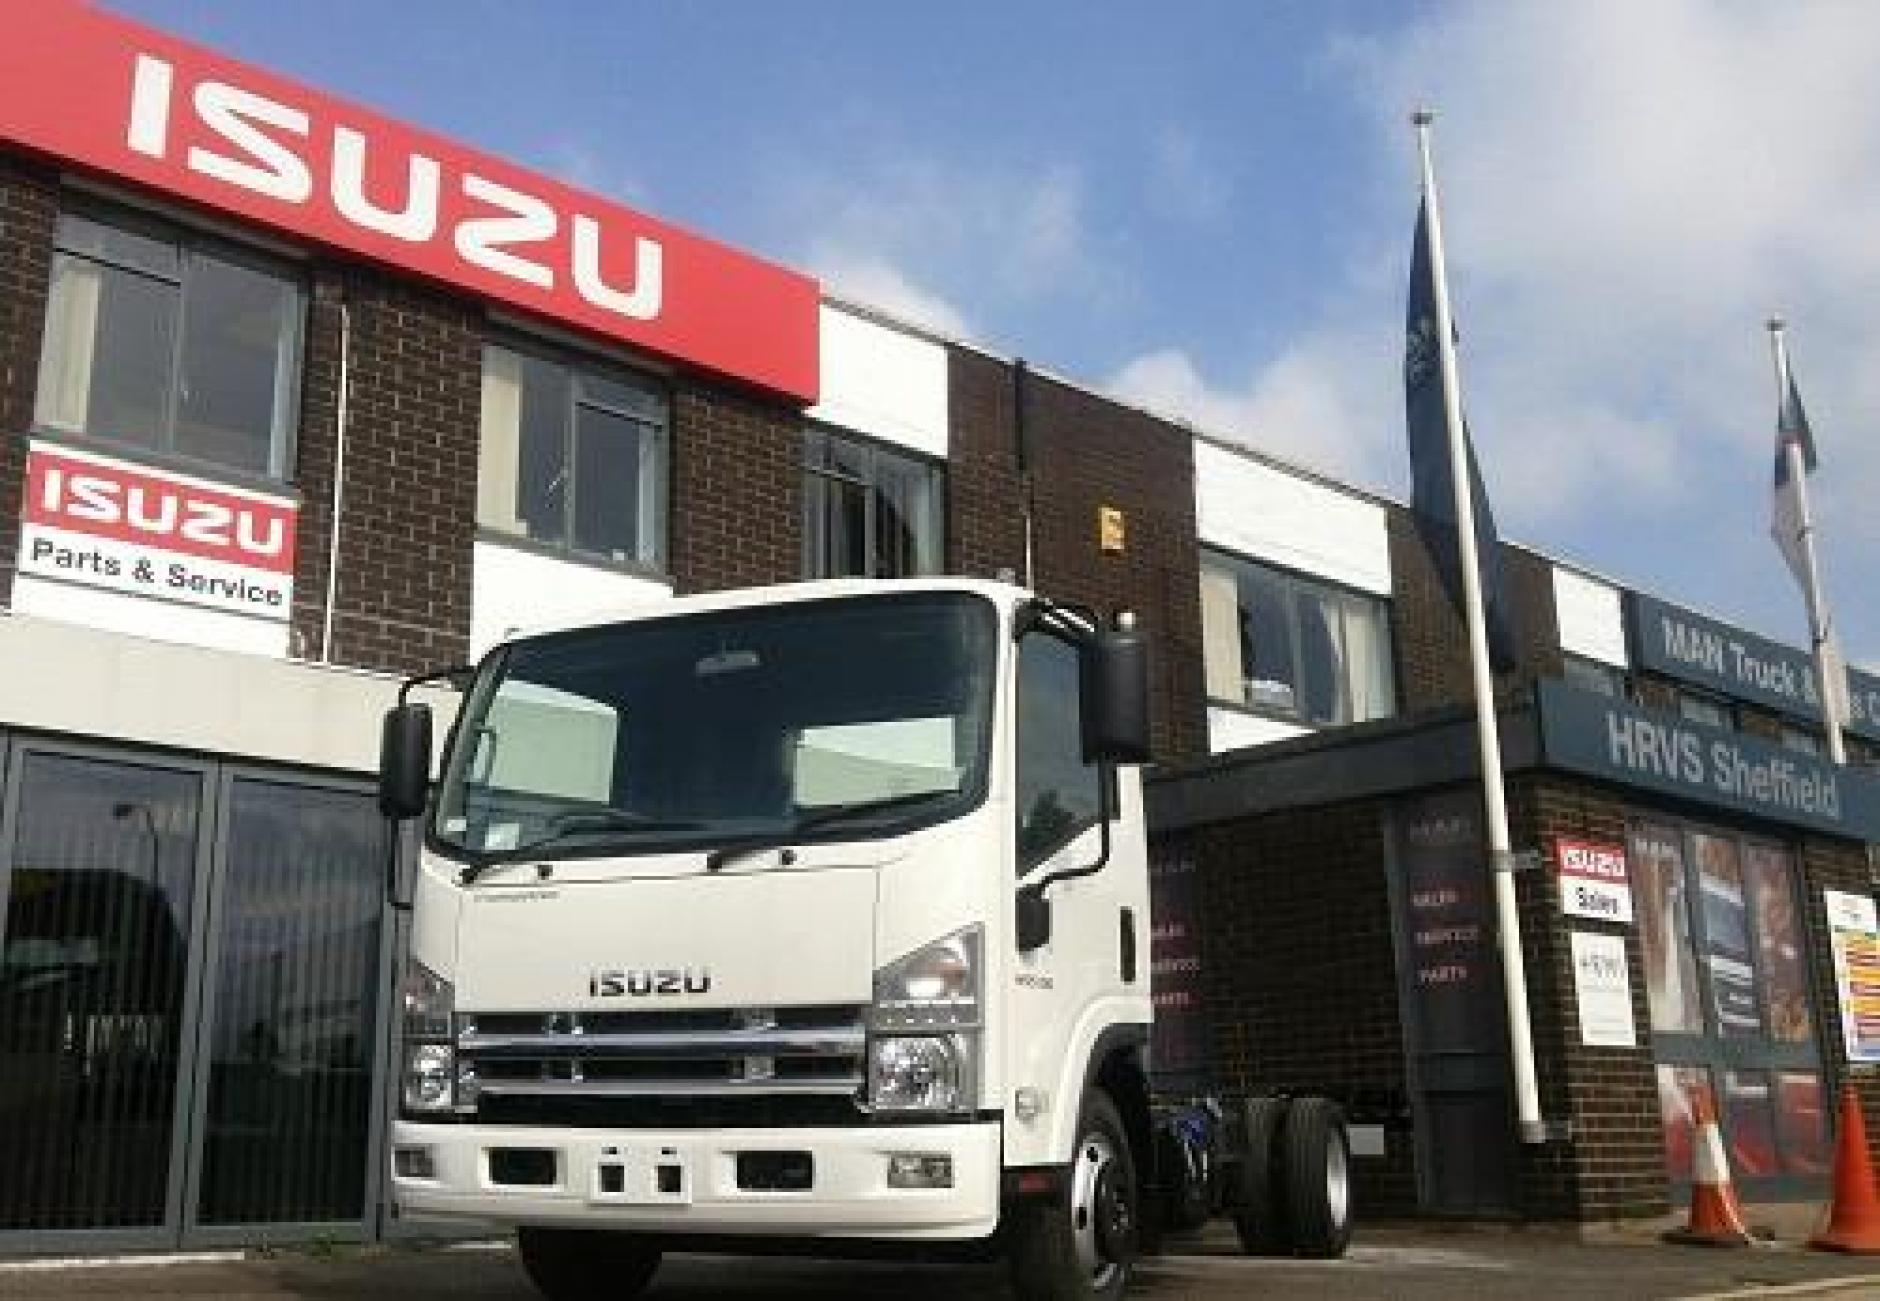 truck dealer hrvs adds the isuzu truck franchise to its sheffield site [ 1880 x 1301 Pixel ]